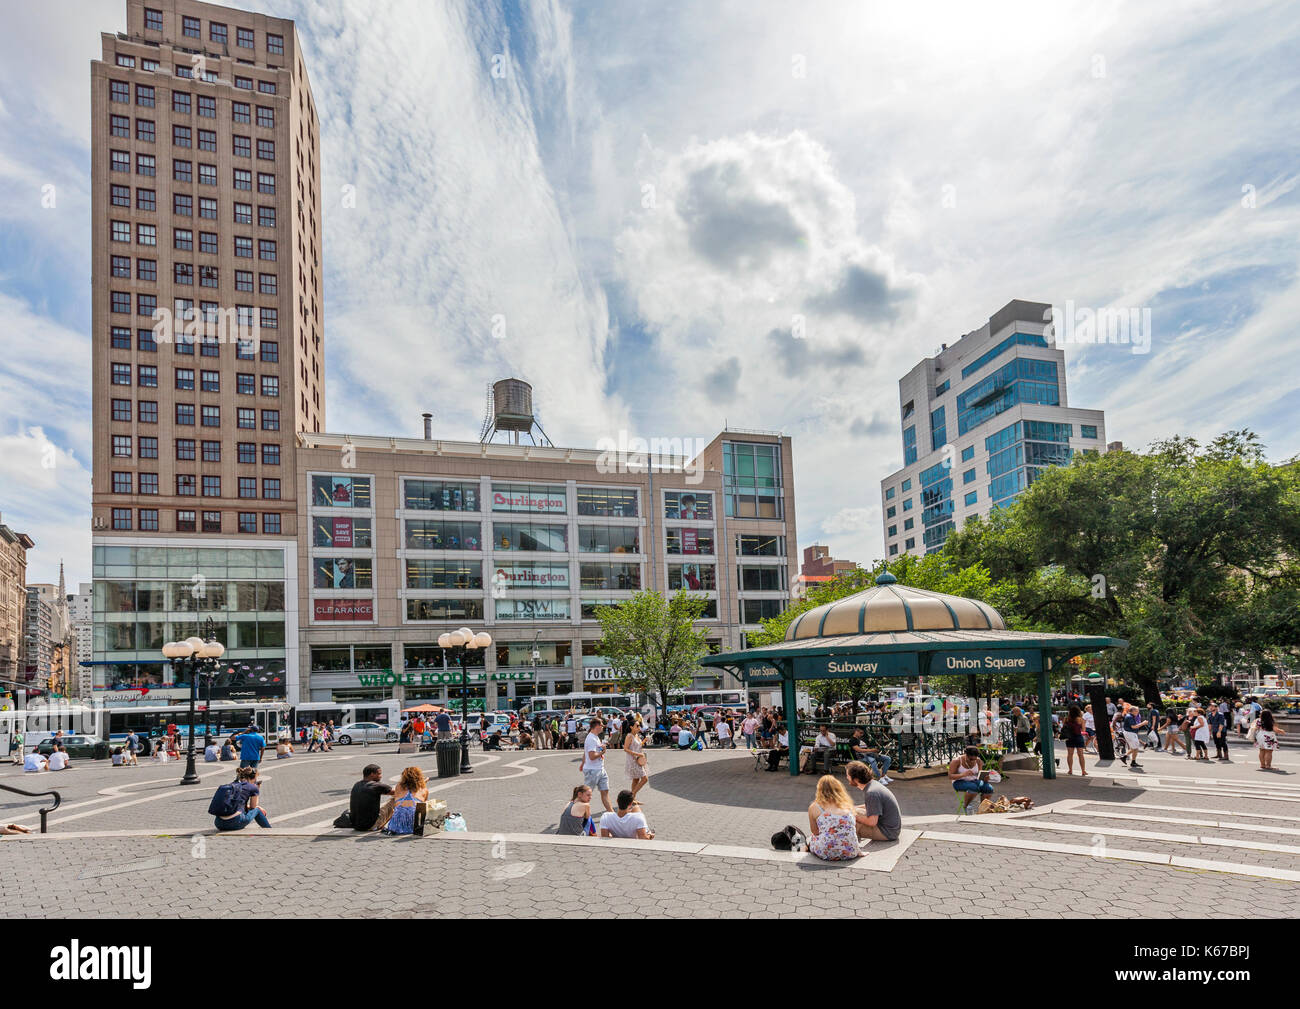 People enjoying leisure time in Union Square, New York in from of the Union Square Subway Station. - Stock Image